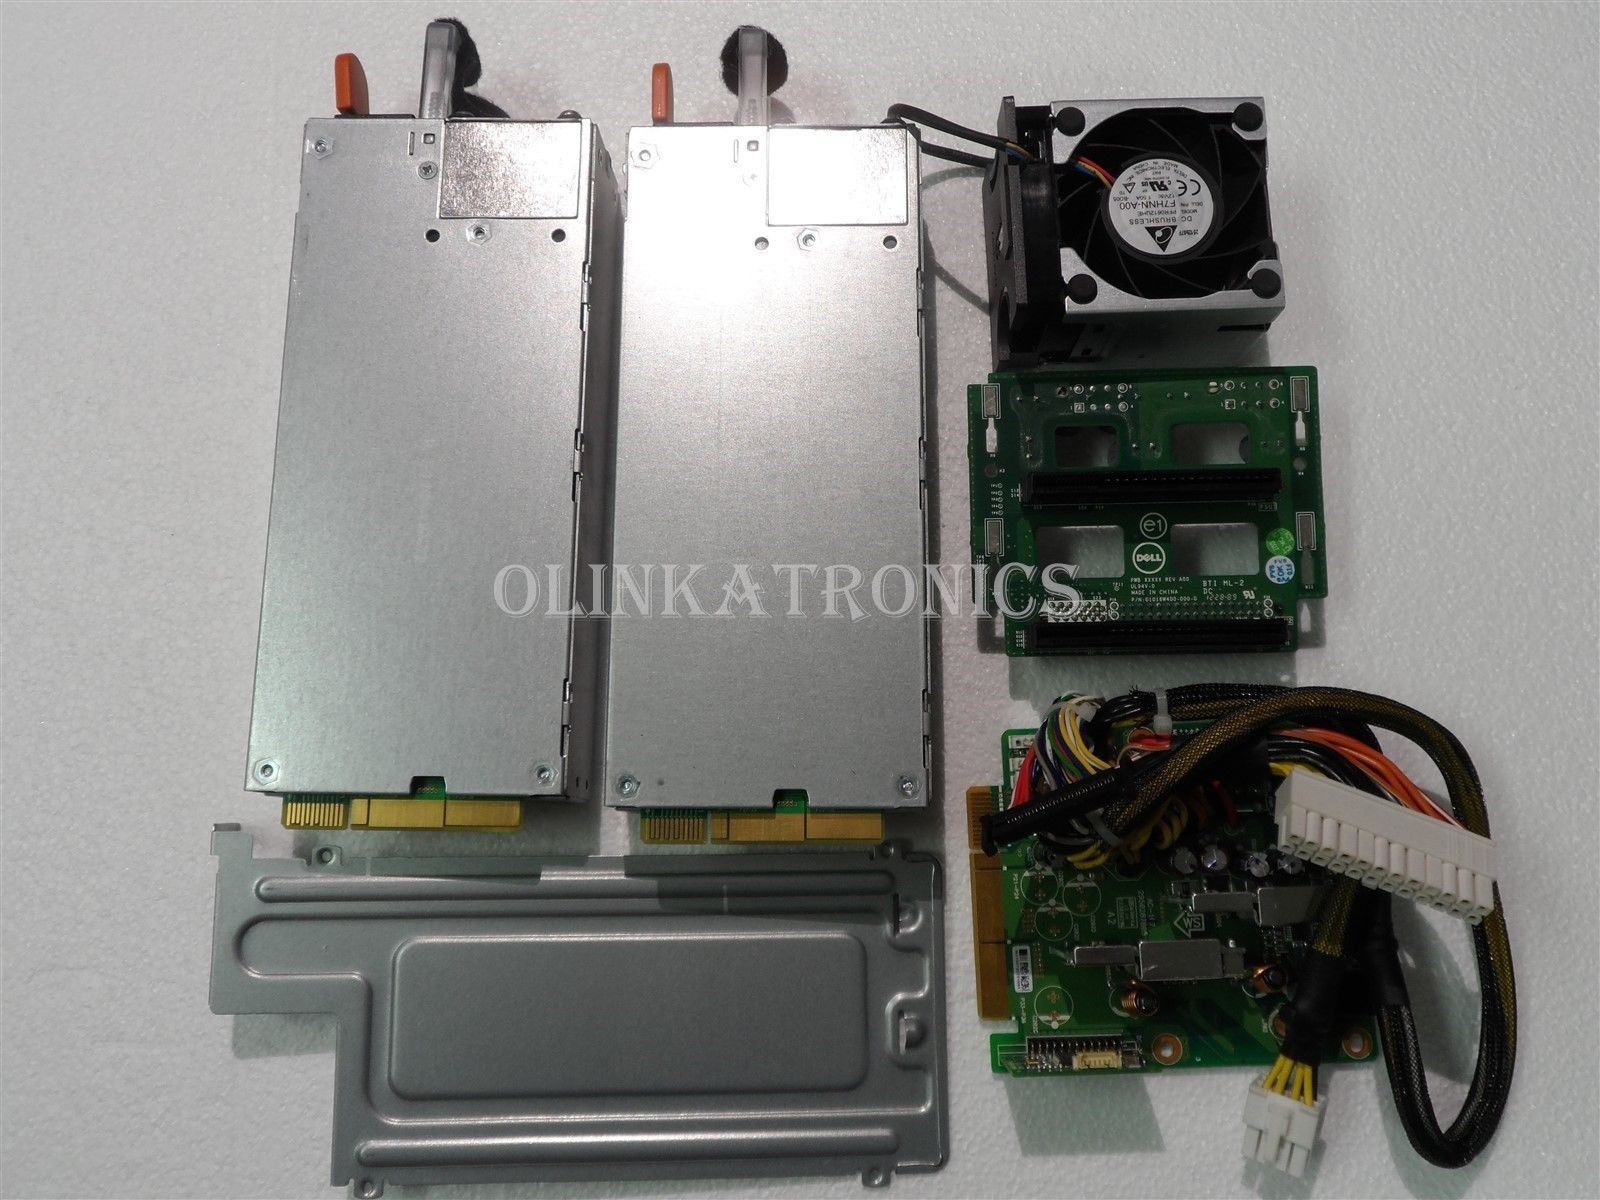 Dell Dual Hot Swap Power Supply 1100w Distribution Board Poweredge Server R520 Ebay Distribution Board Power Supply Server